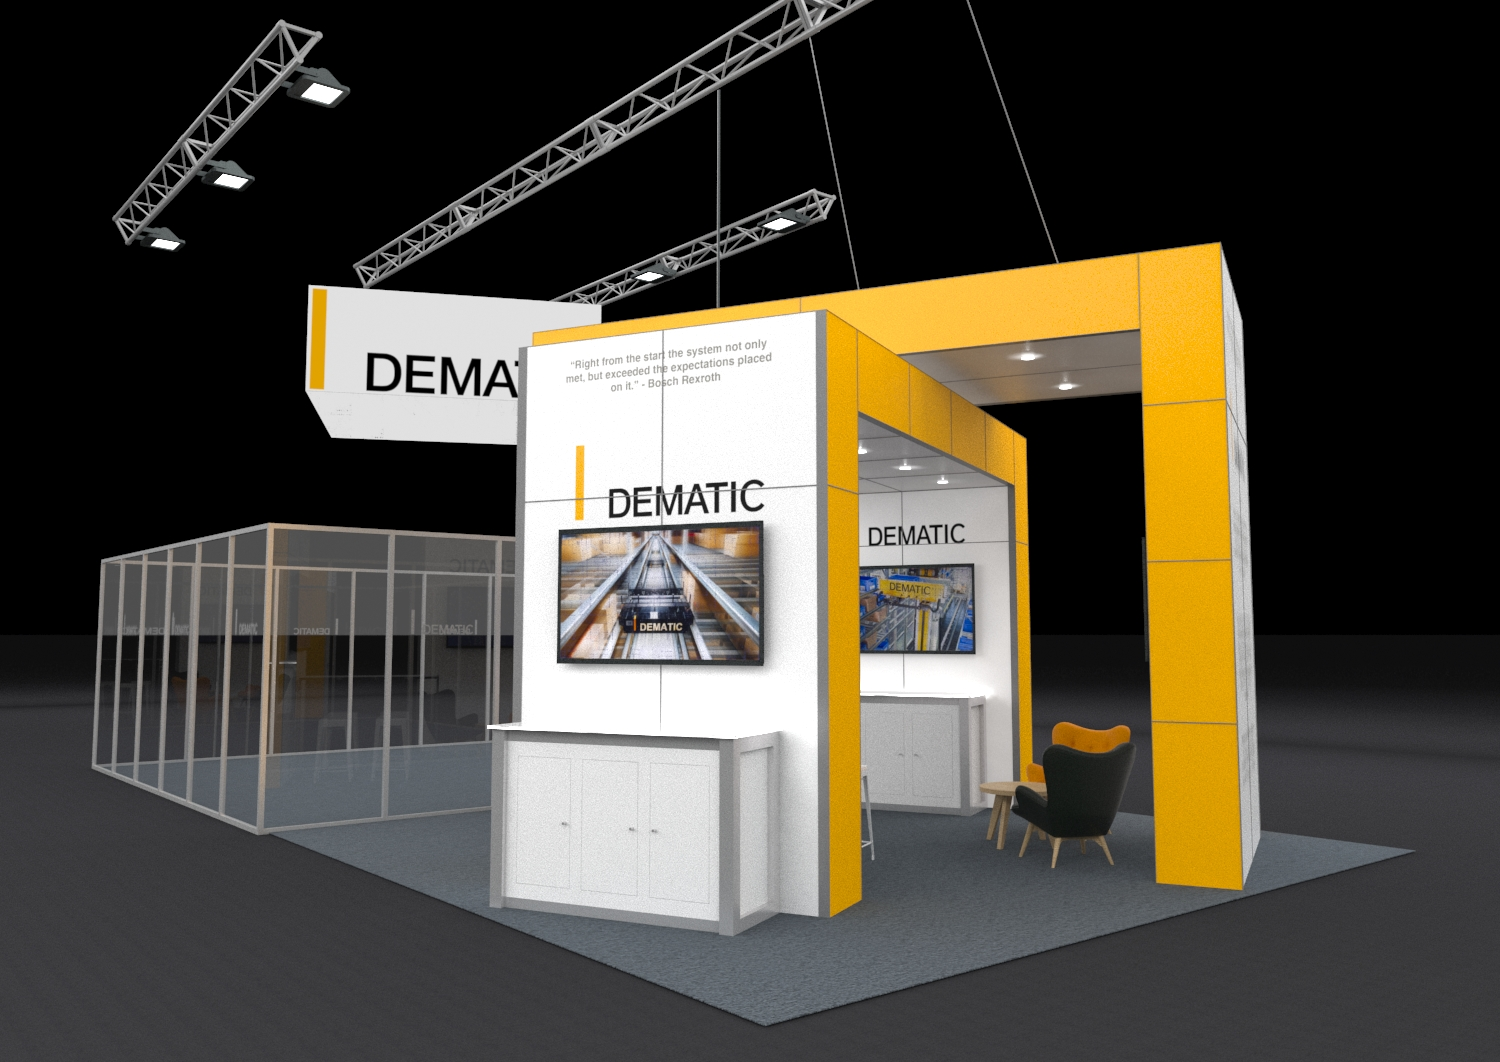 dematic-cemat-02